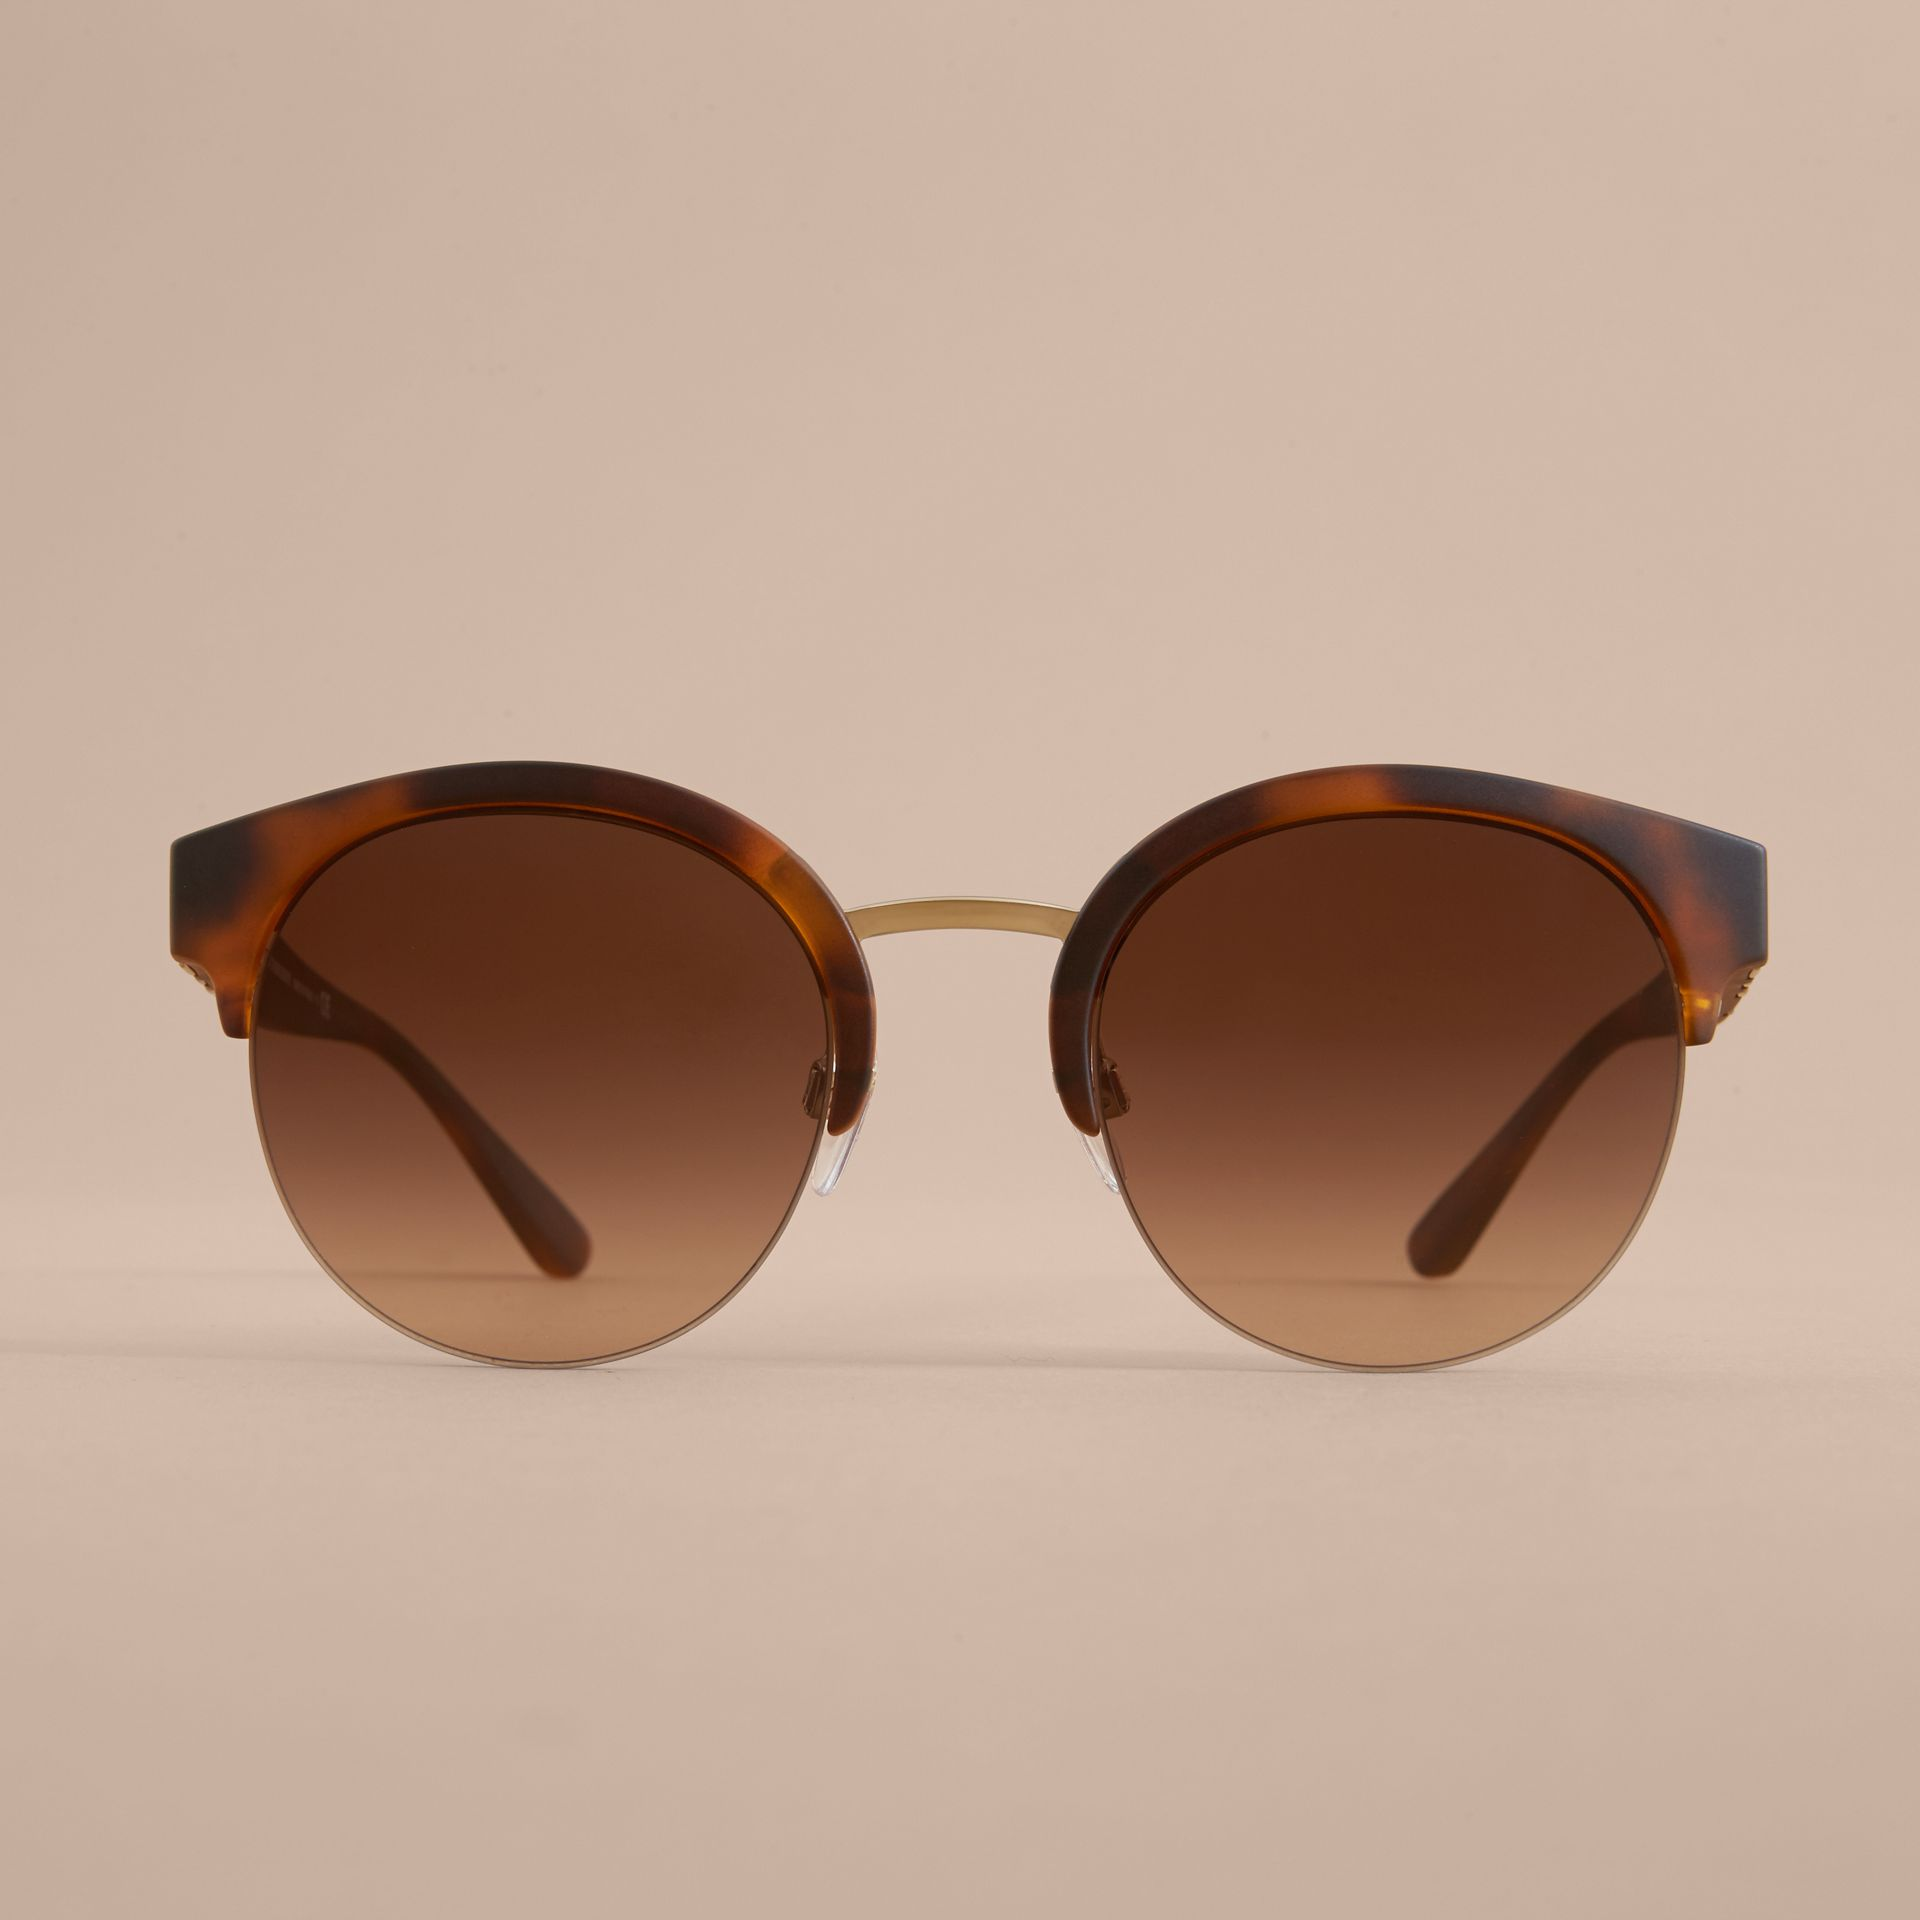 Check Detail Round Half-frame Sunglasses in Brown - Women | Burberry - gallery image 3